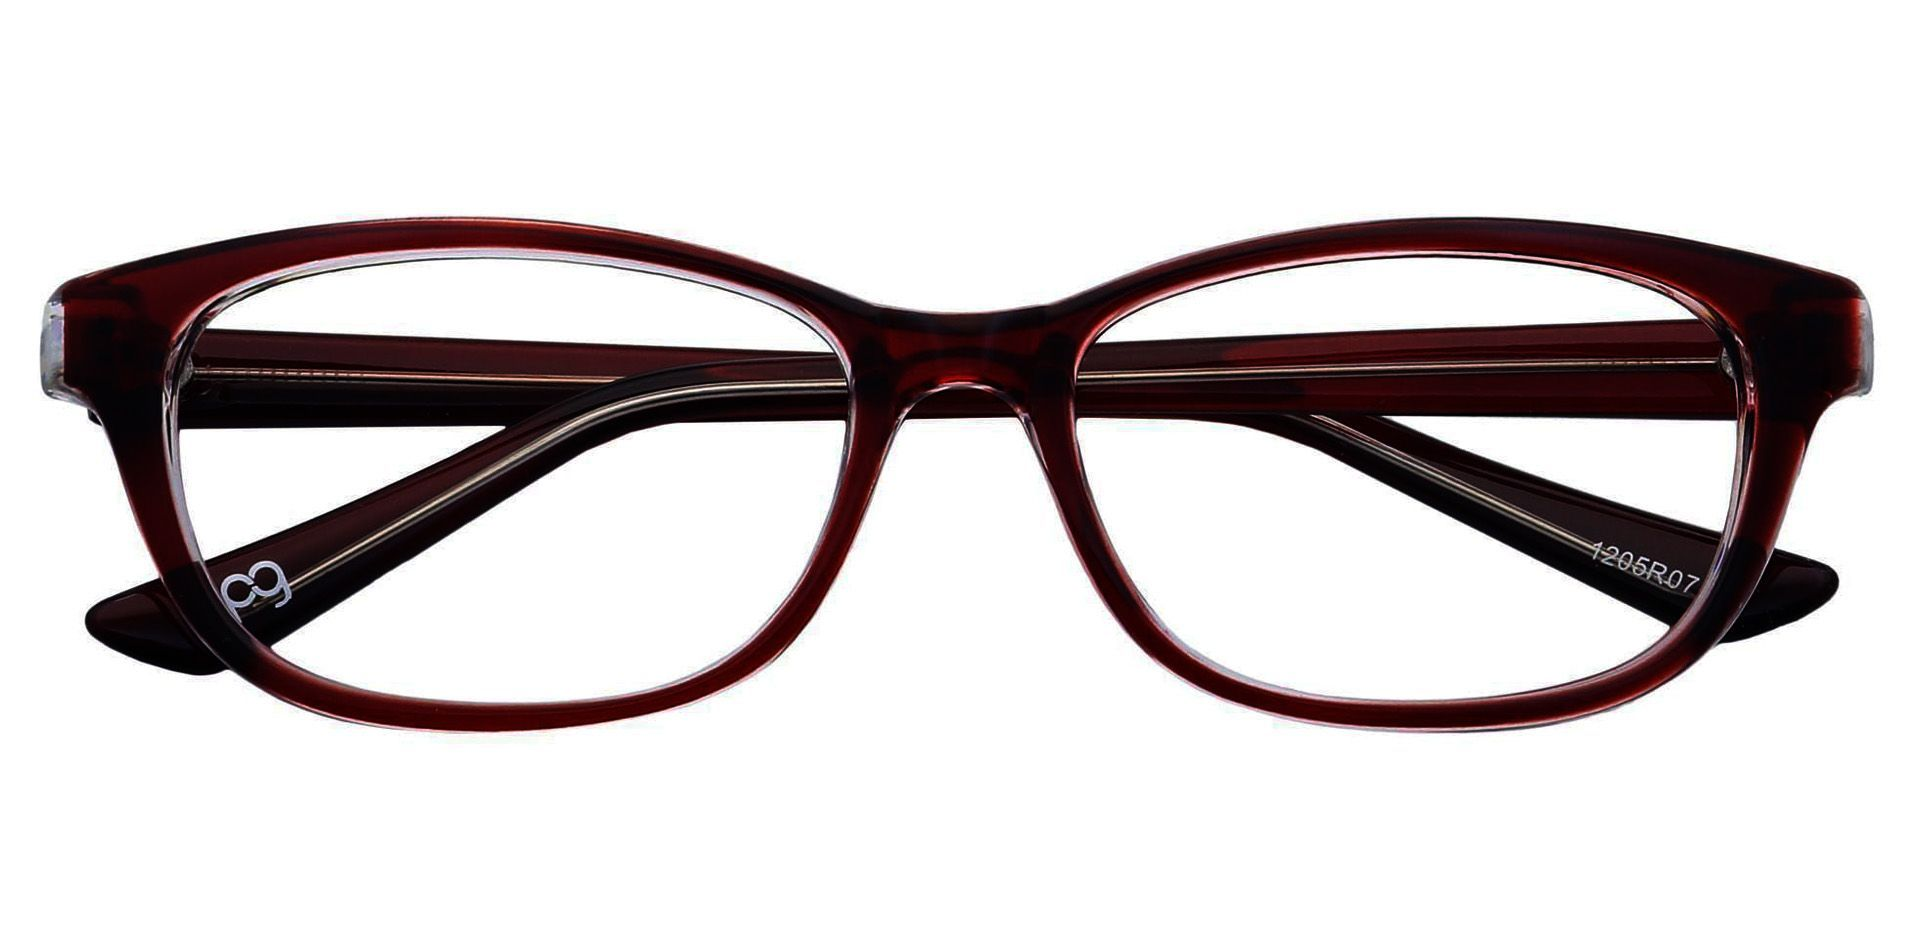 Reyna Classic Square Blue Light Blocking Glasses - Red